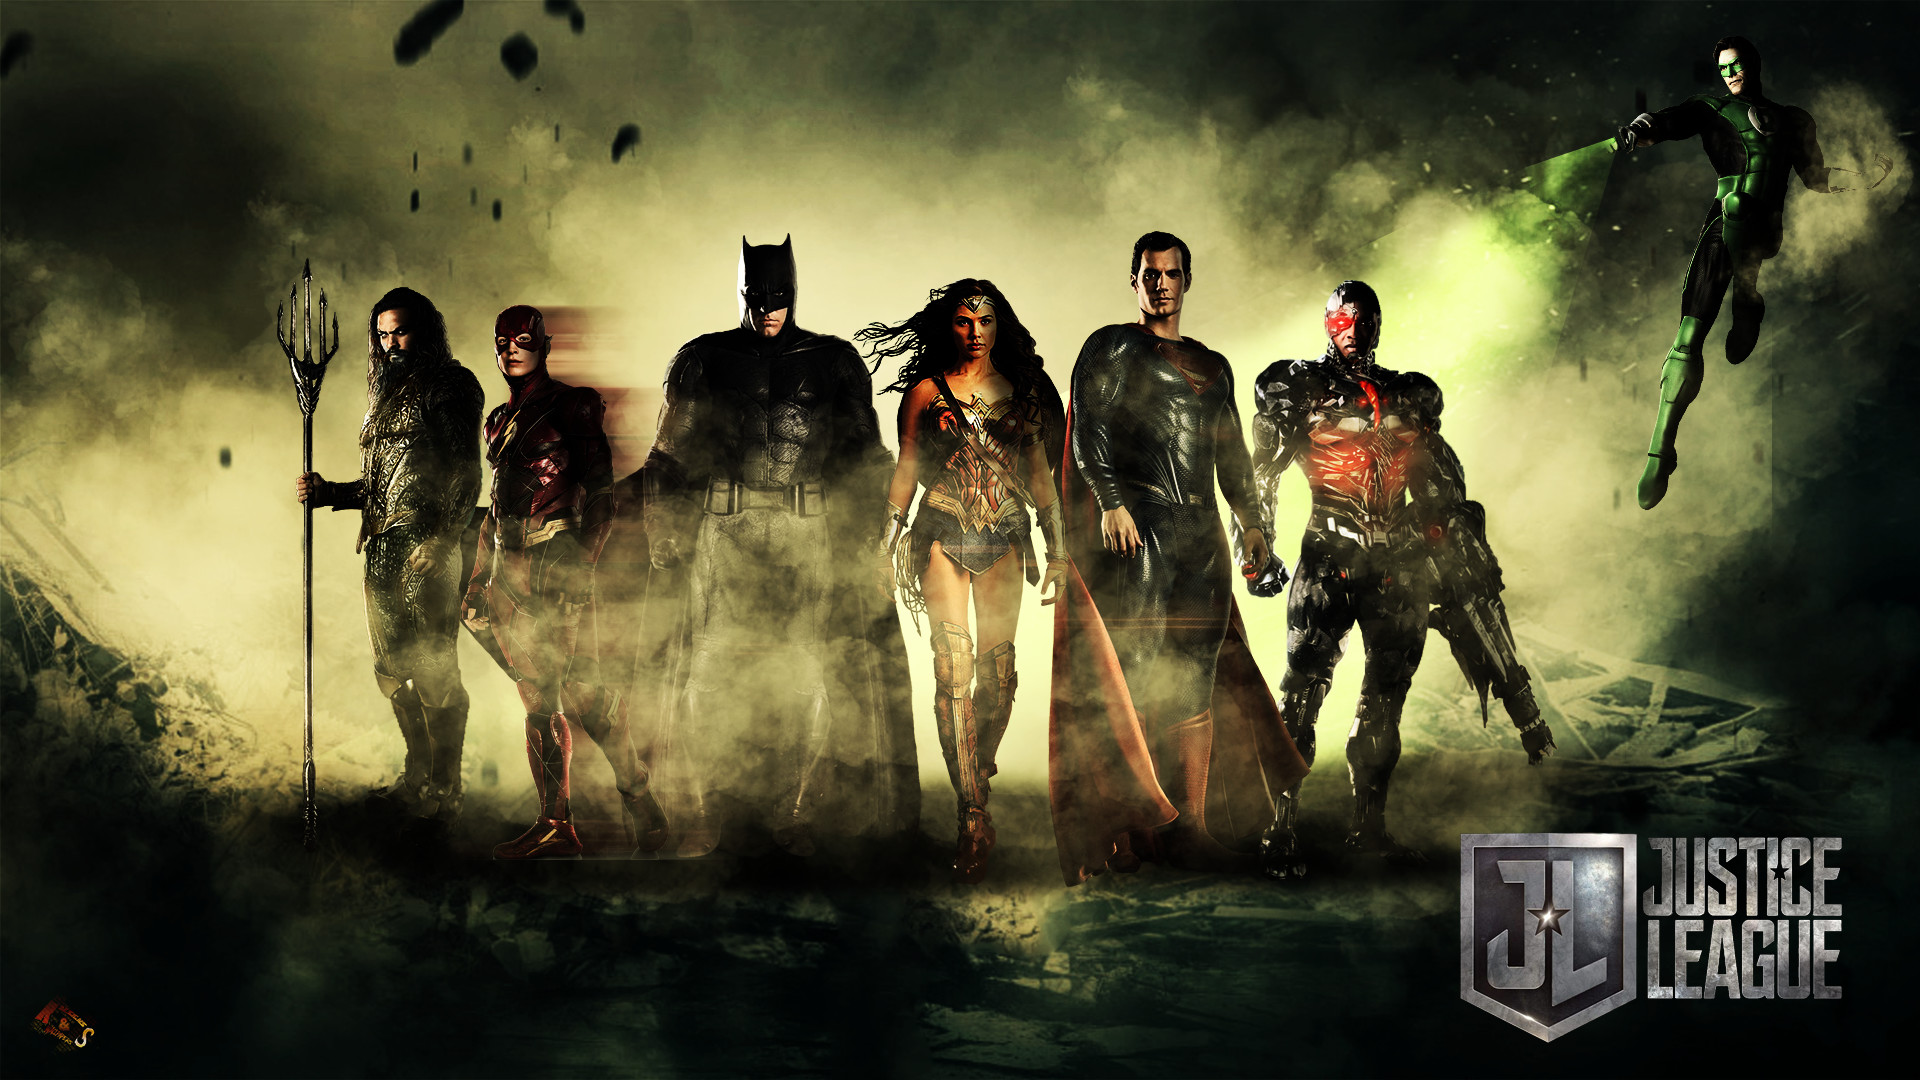 1920x1080 Justice League Wallpaper by RohitBasu Justice League Wallpaper by RohitBasu